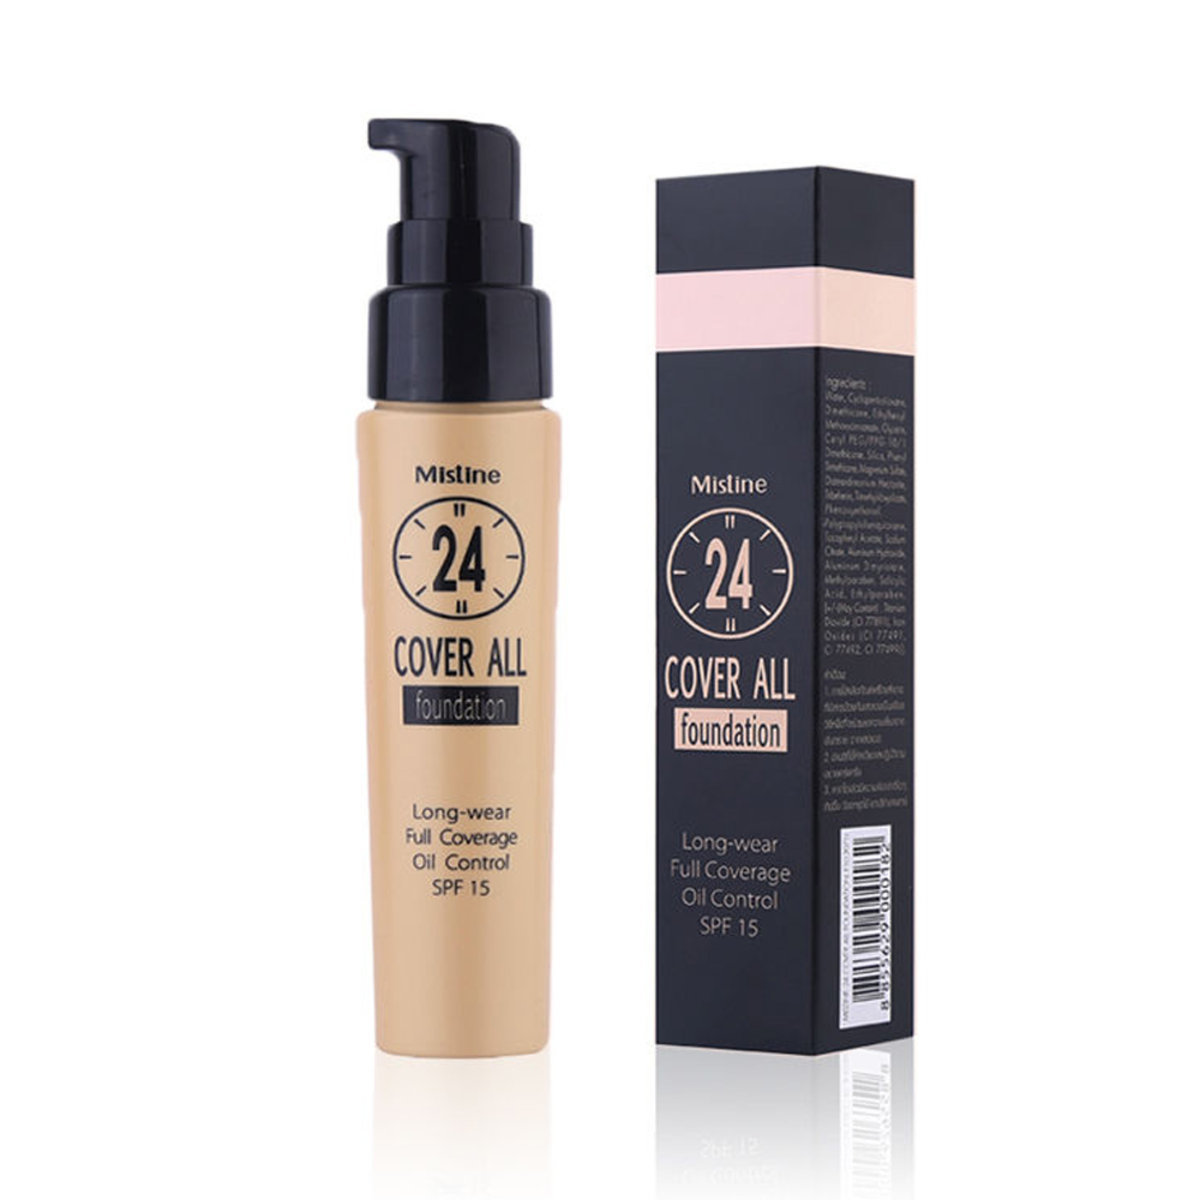 24 cover all foundation F2 natural